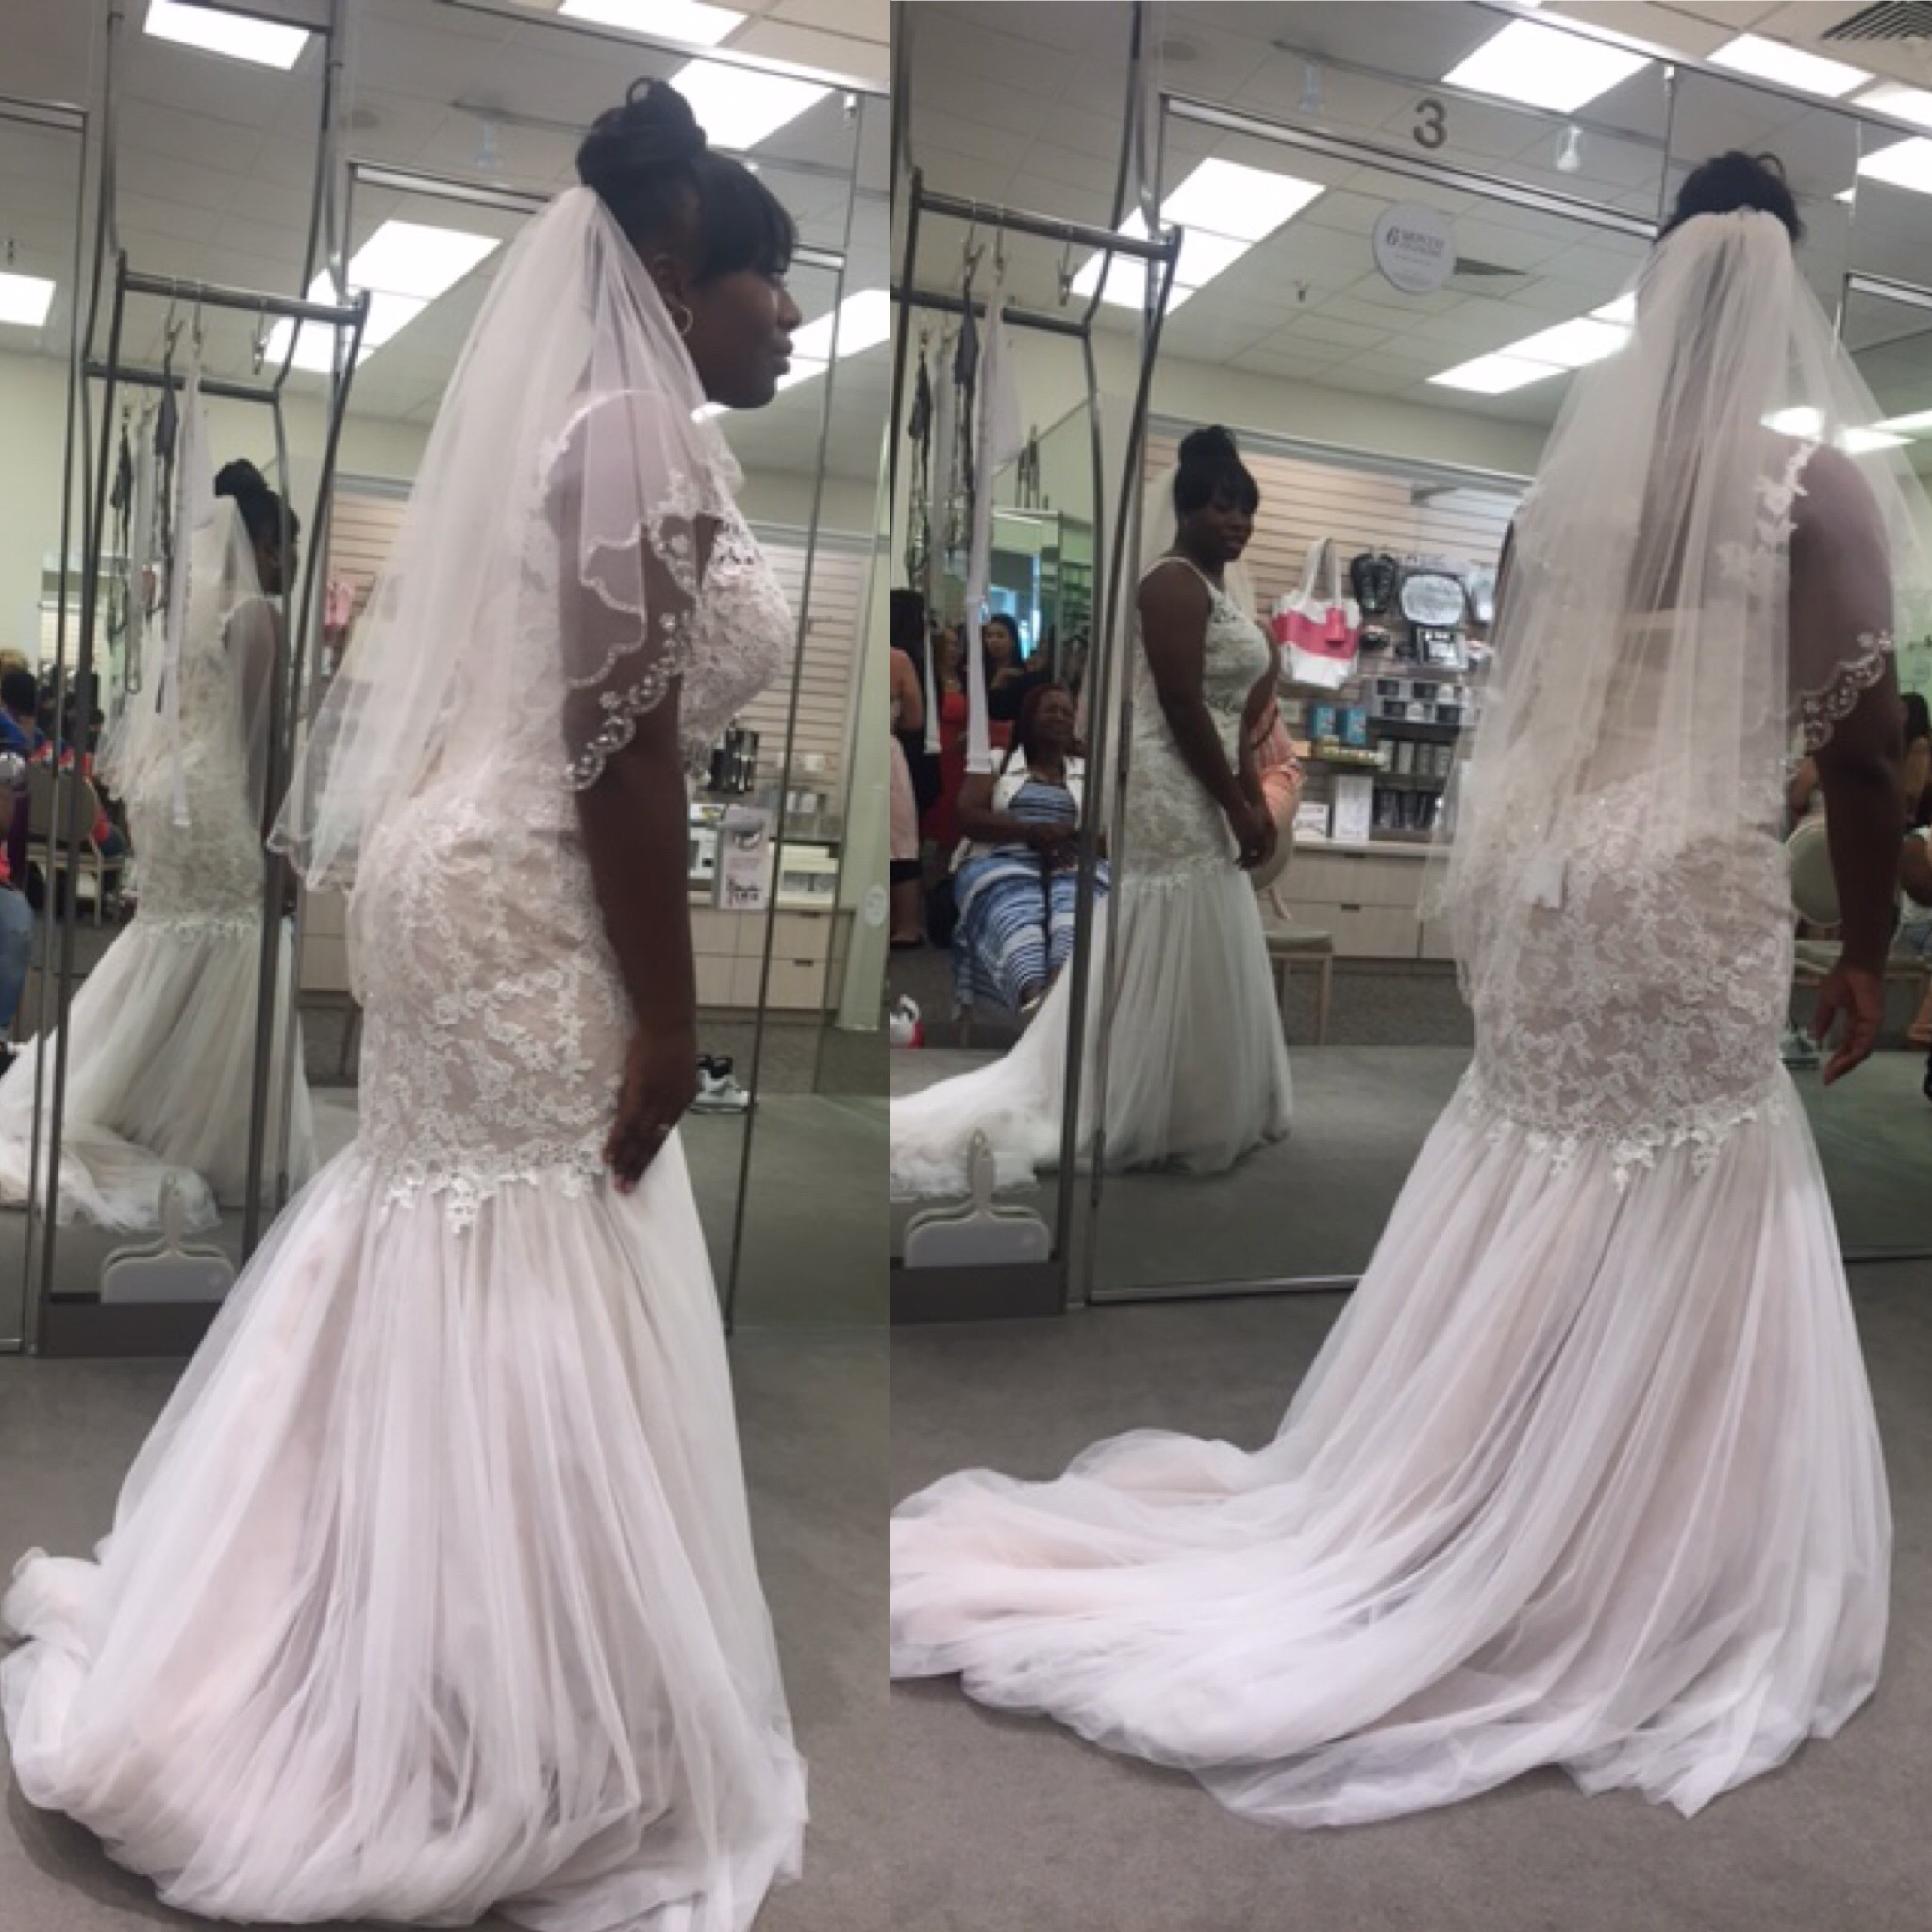 galina signature wedding gown new wtags wedding dress bag It has been stored in a dress bag and in brand new condition with tags since November It s a lace Venetian styled wedding dress that is absolutely